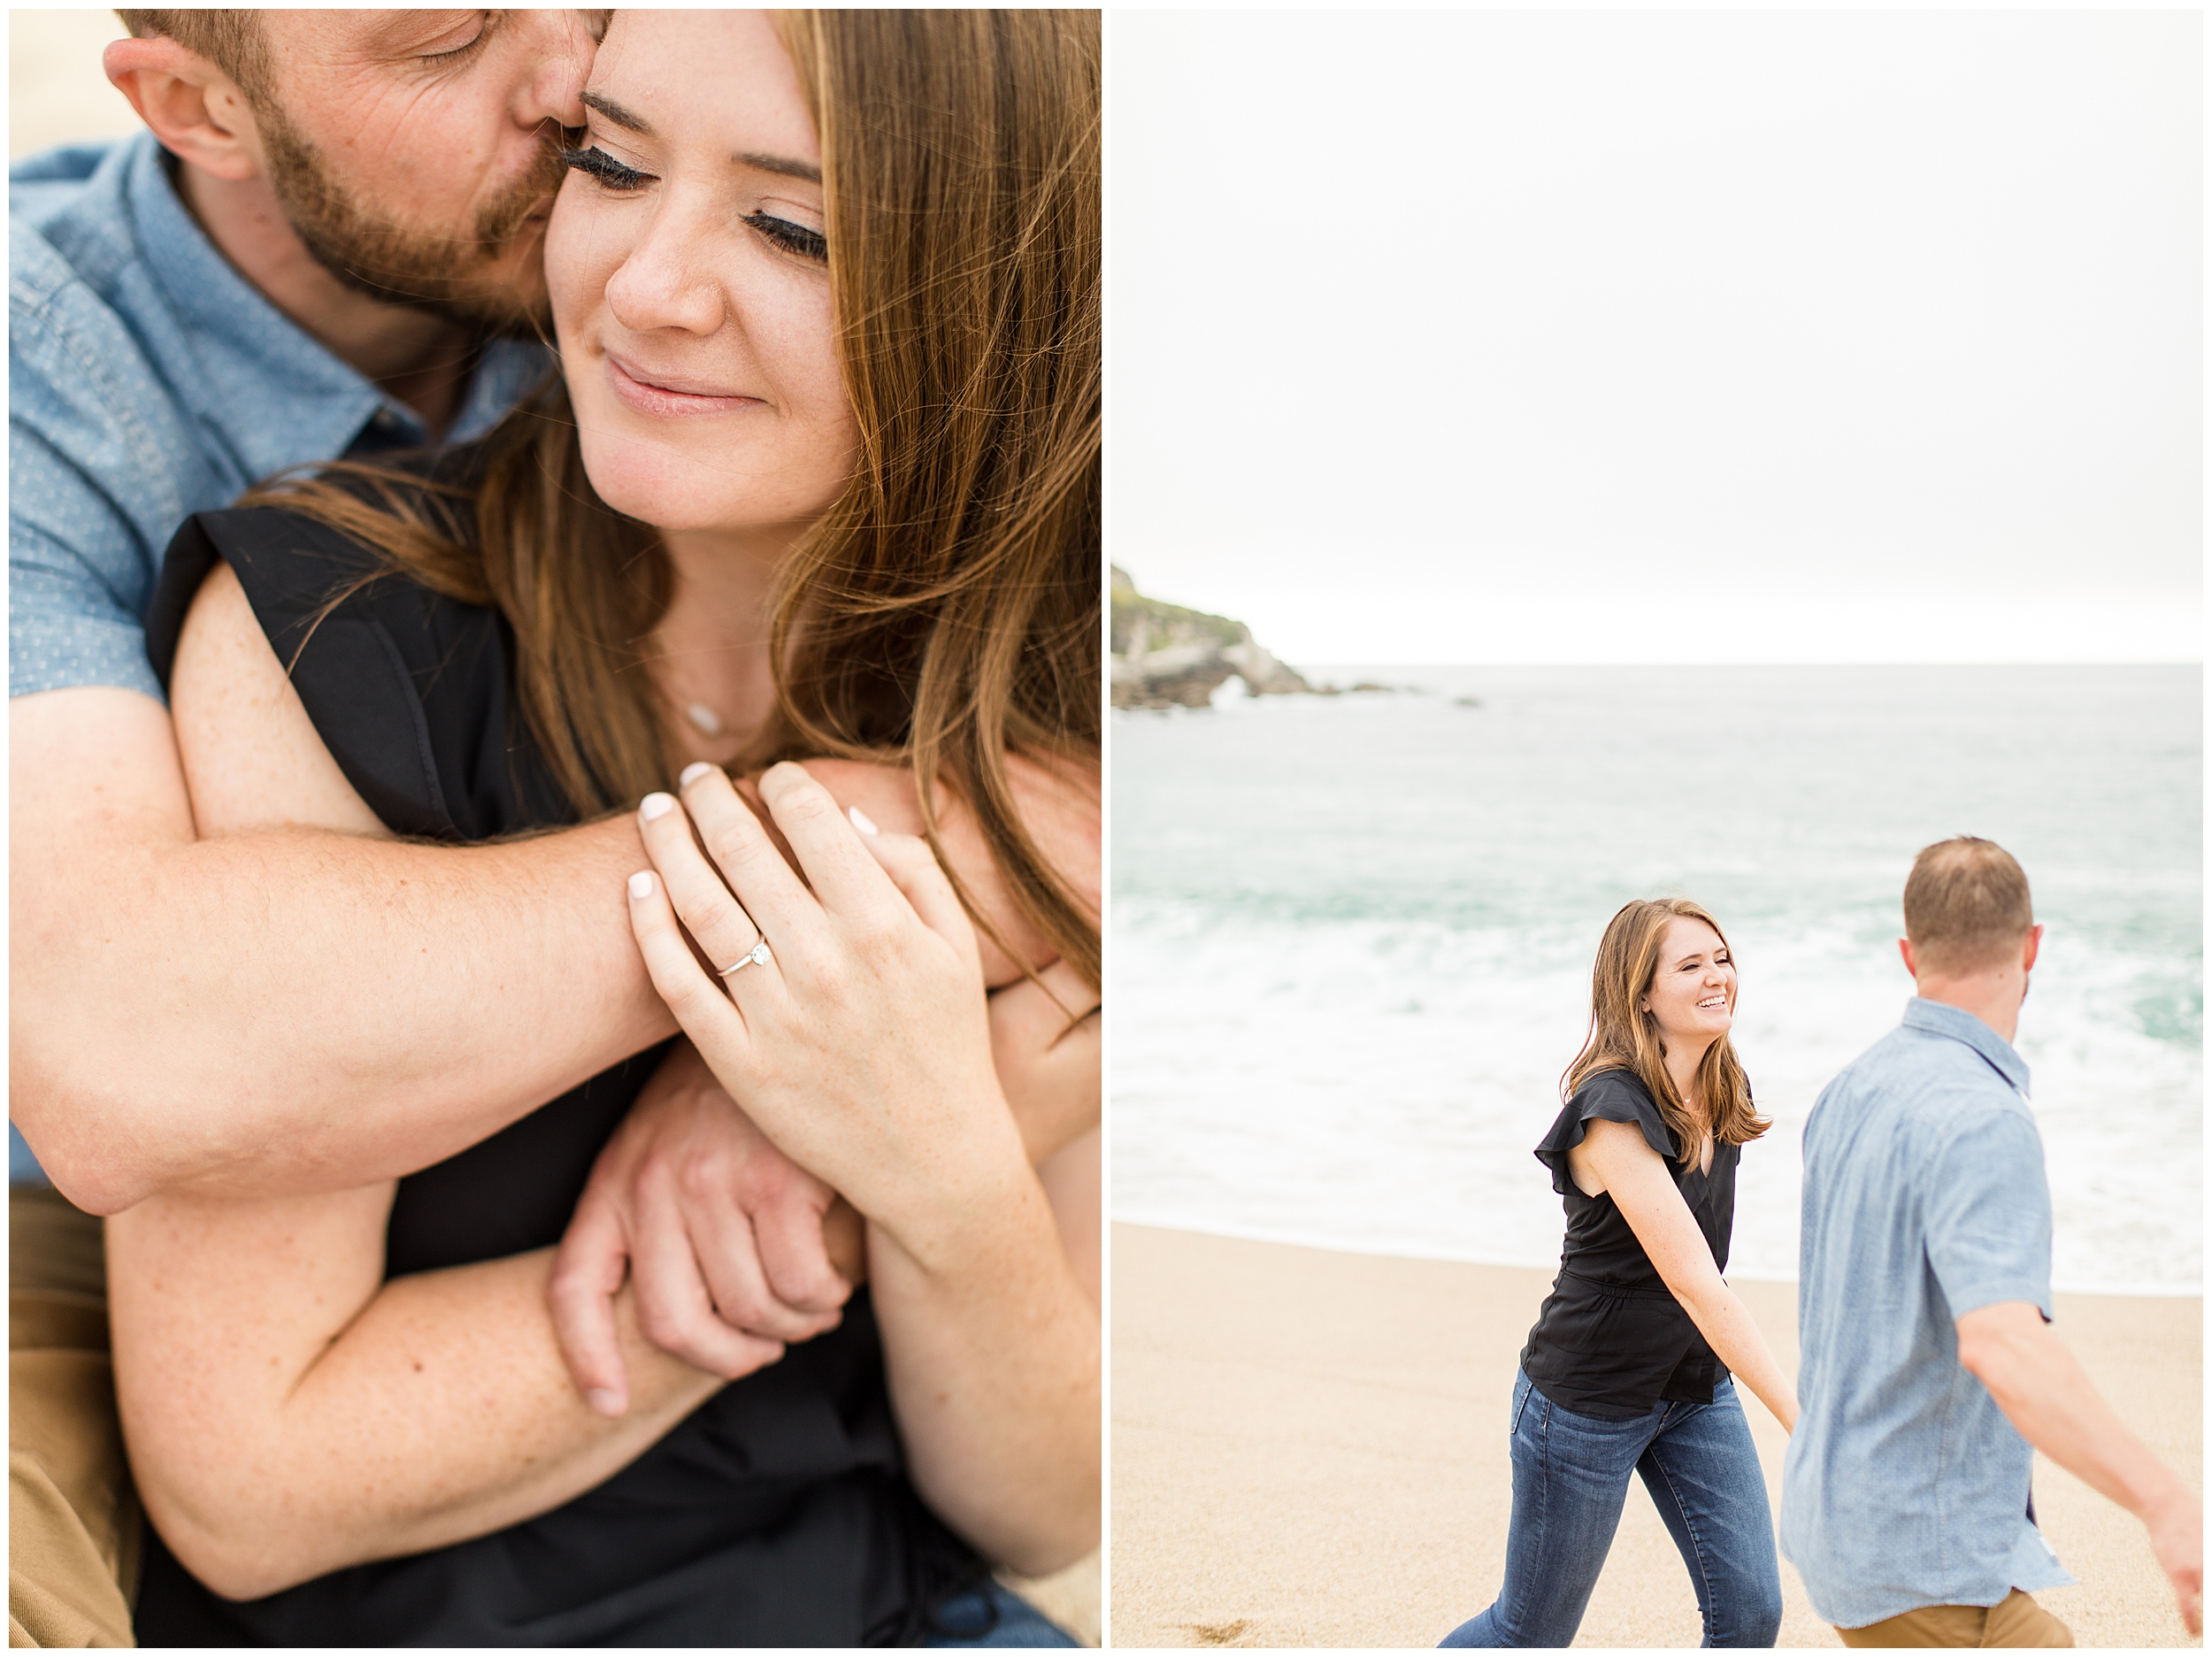 2019 carmel by the sea surprise proposal engagement session wedding photographer angela sue photography_0016.jpg